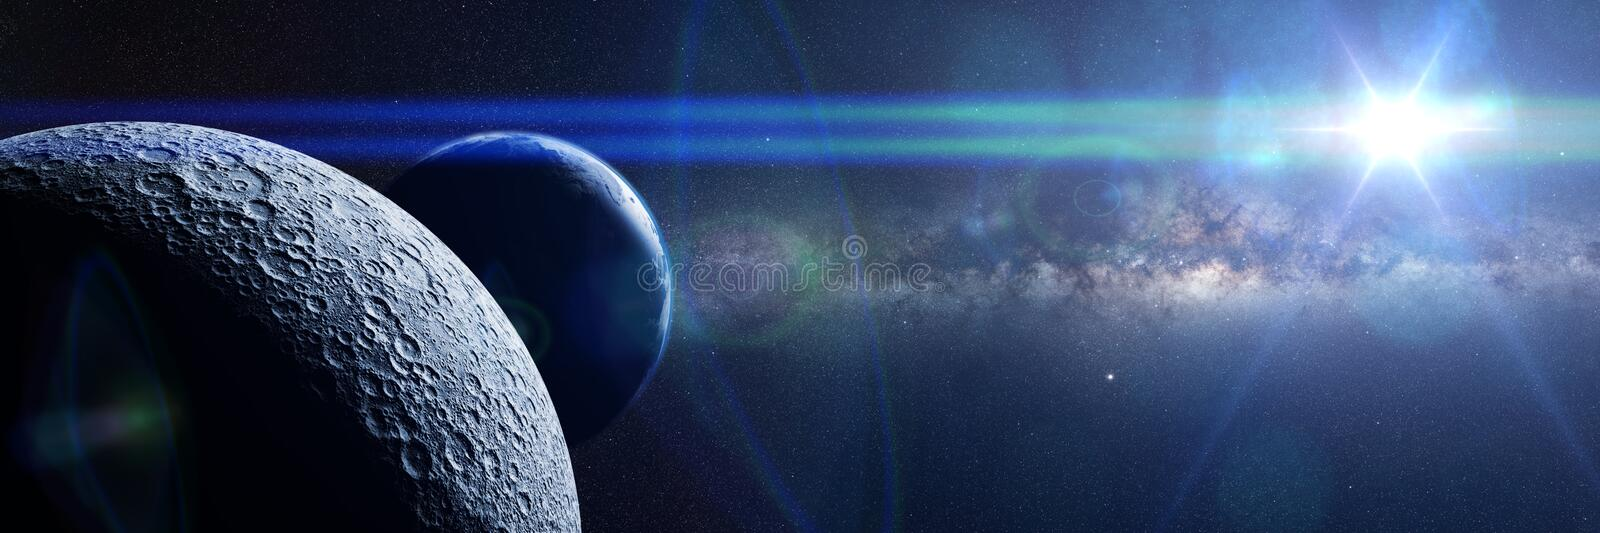 Moon in front of Earth, the bright Sun and the Milky Way galaxy royalty free stock photos